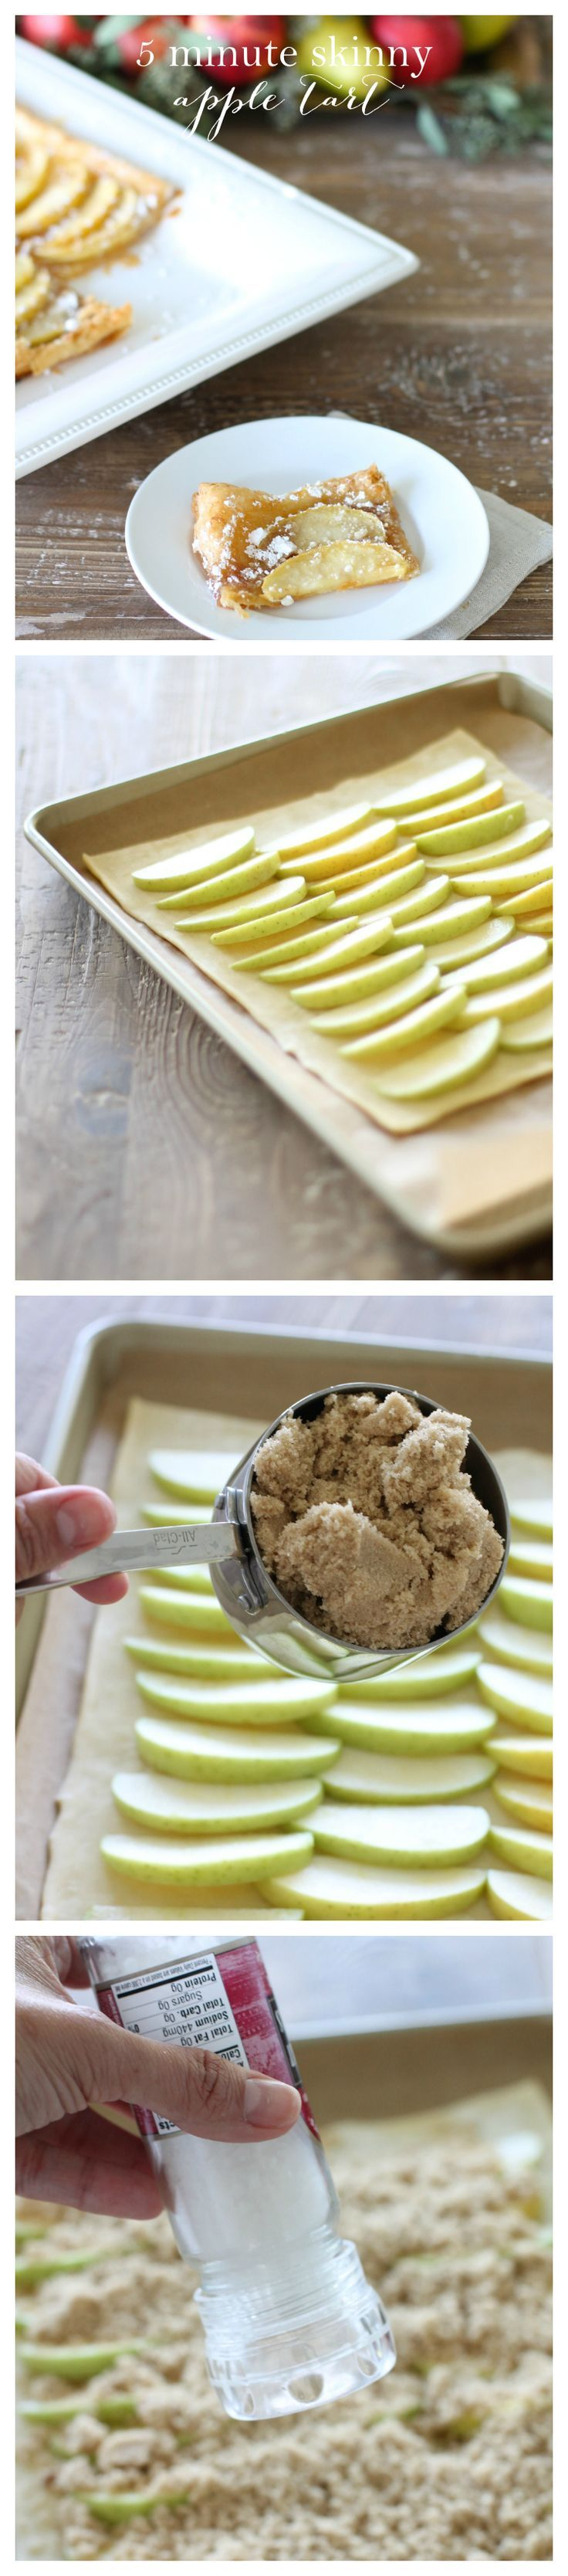 5 Minute Skinny Apple Tart recipe {and it's amazing!} A great Easter recipe!